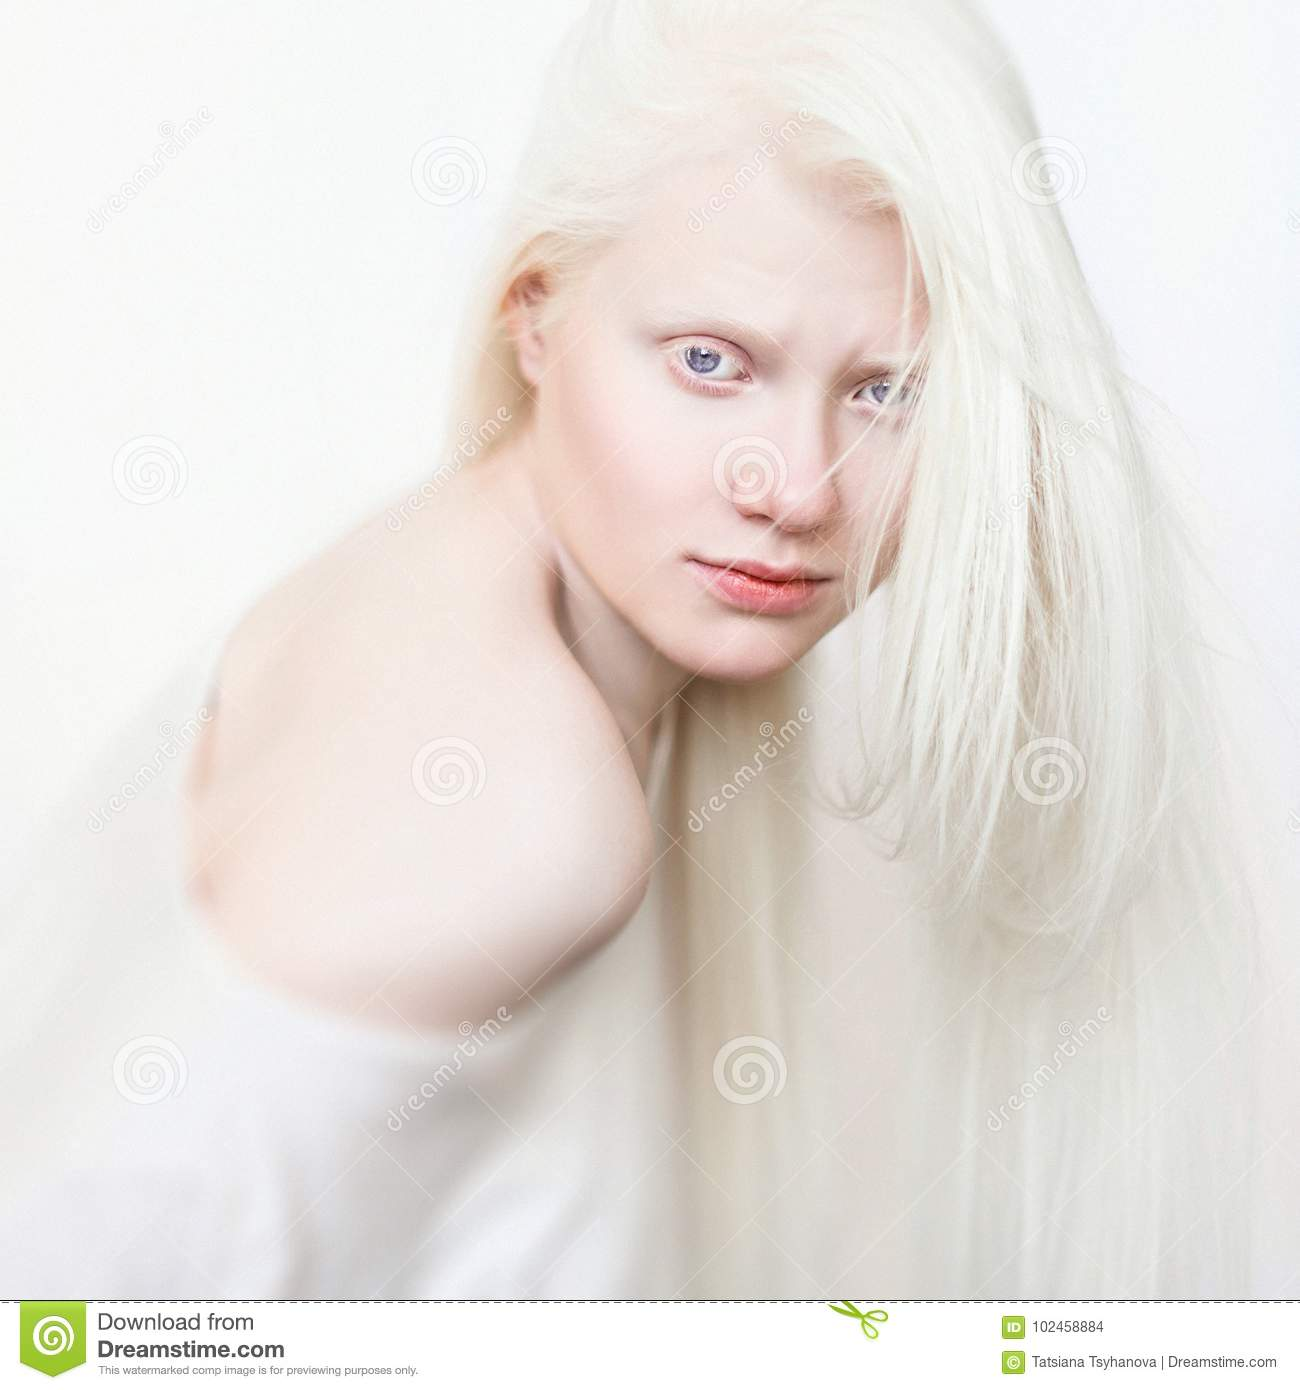 561e4e46629 Albino female with white skin, natural lips and white hair. Photo face.  Portrait of the head. Blonde girl. Blue eyes.